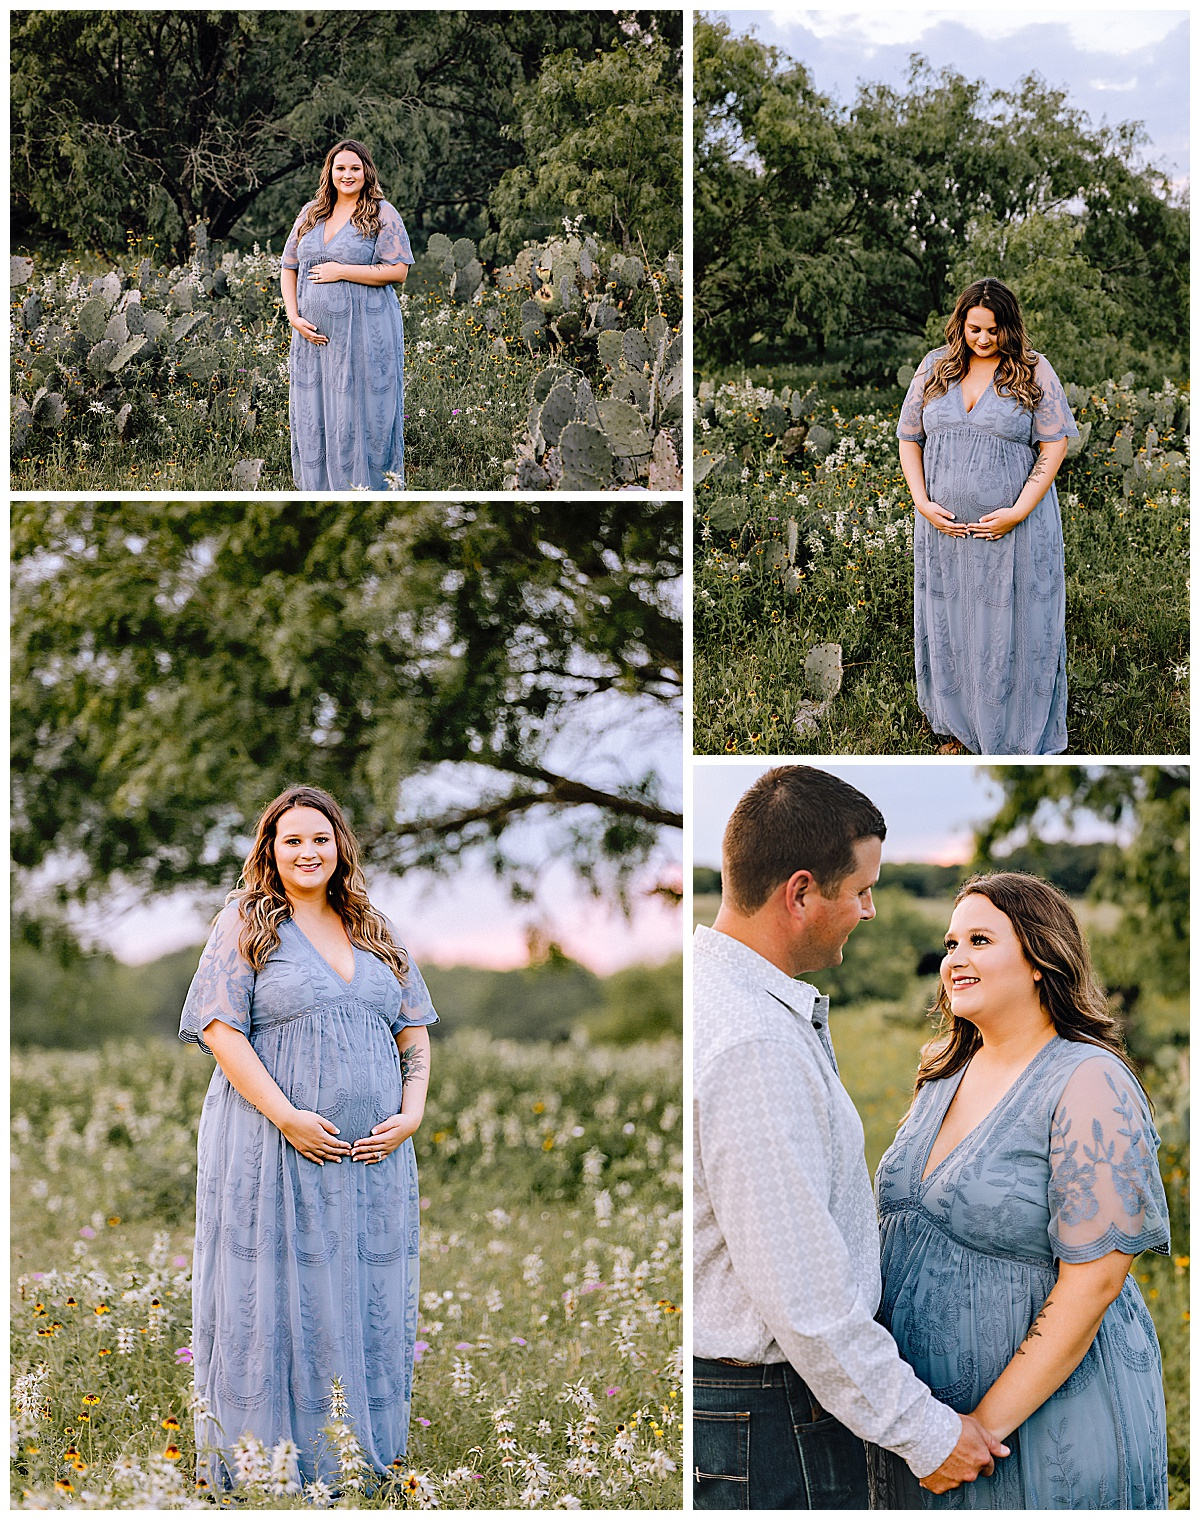 Rustic-Maternity-Session-Texas-Sunset-Carly-Barton-Photography_0074.jpg